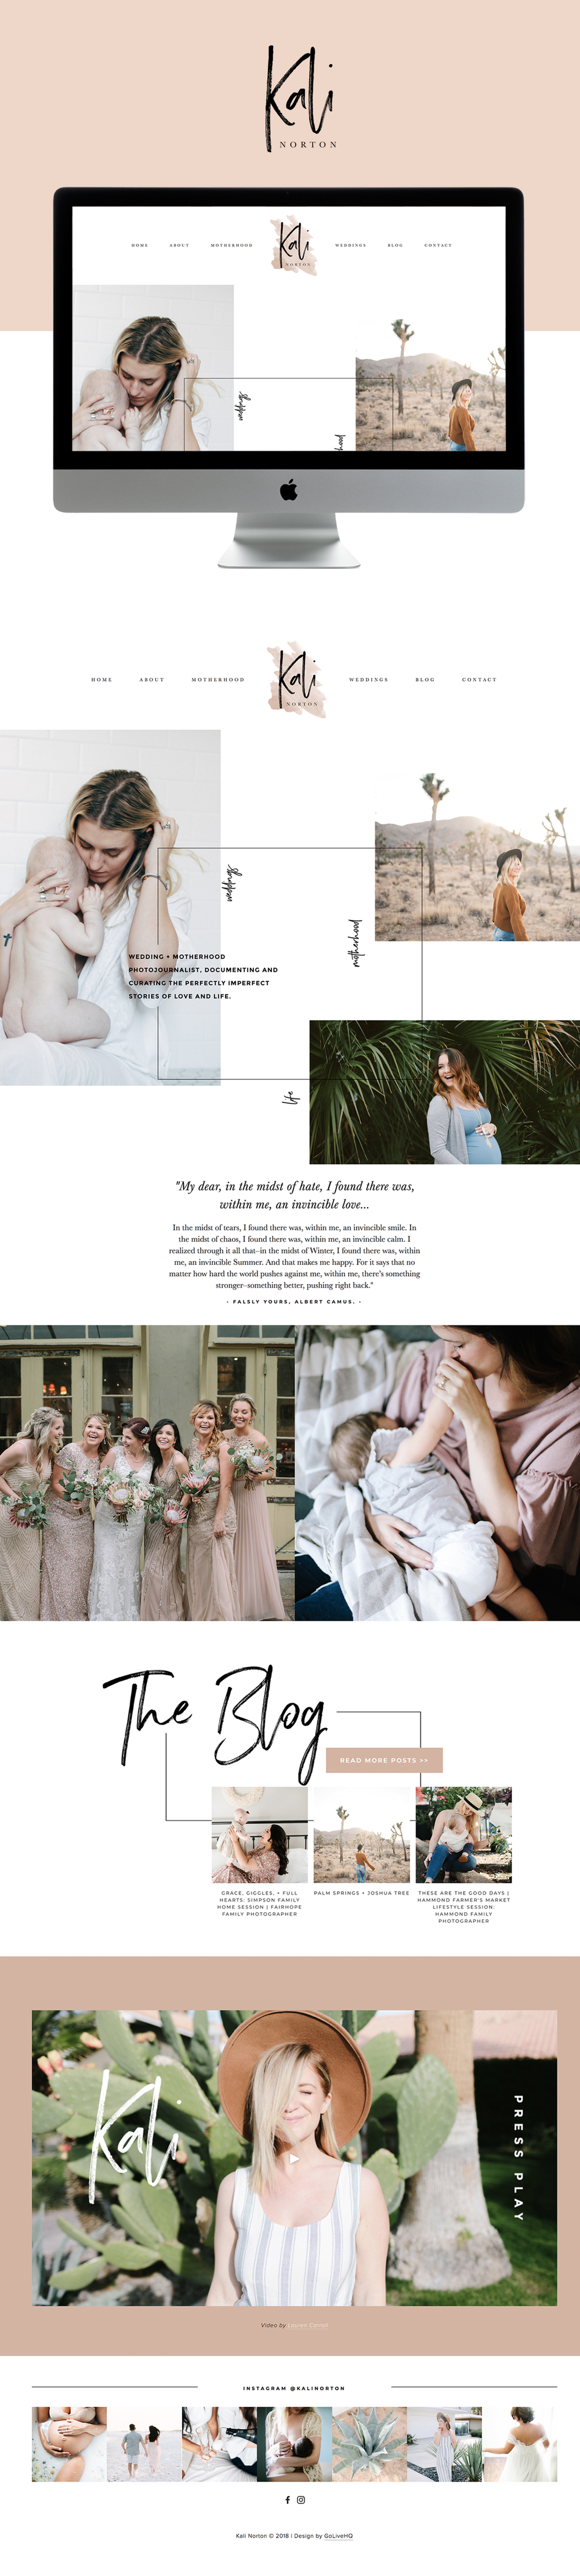 Website Design for Wedding & Lifestyle Photographer Kali Norton | Site Design by Go Live HQ